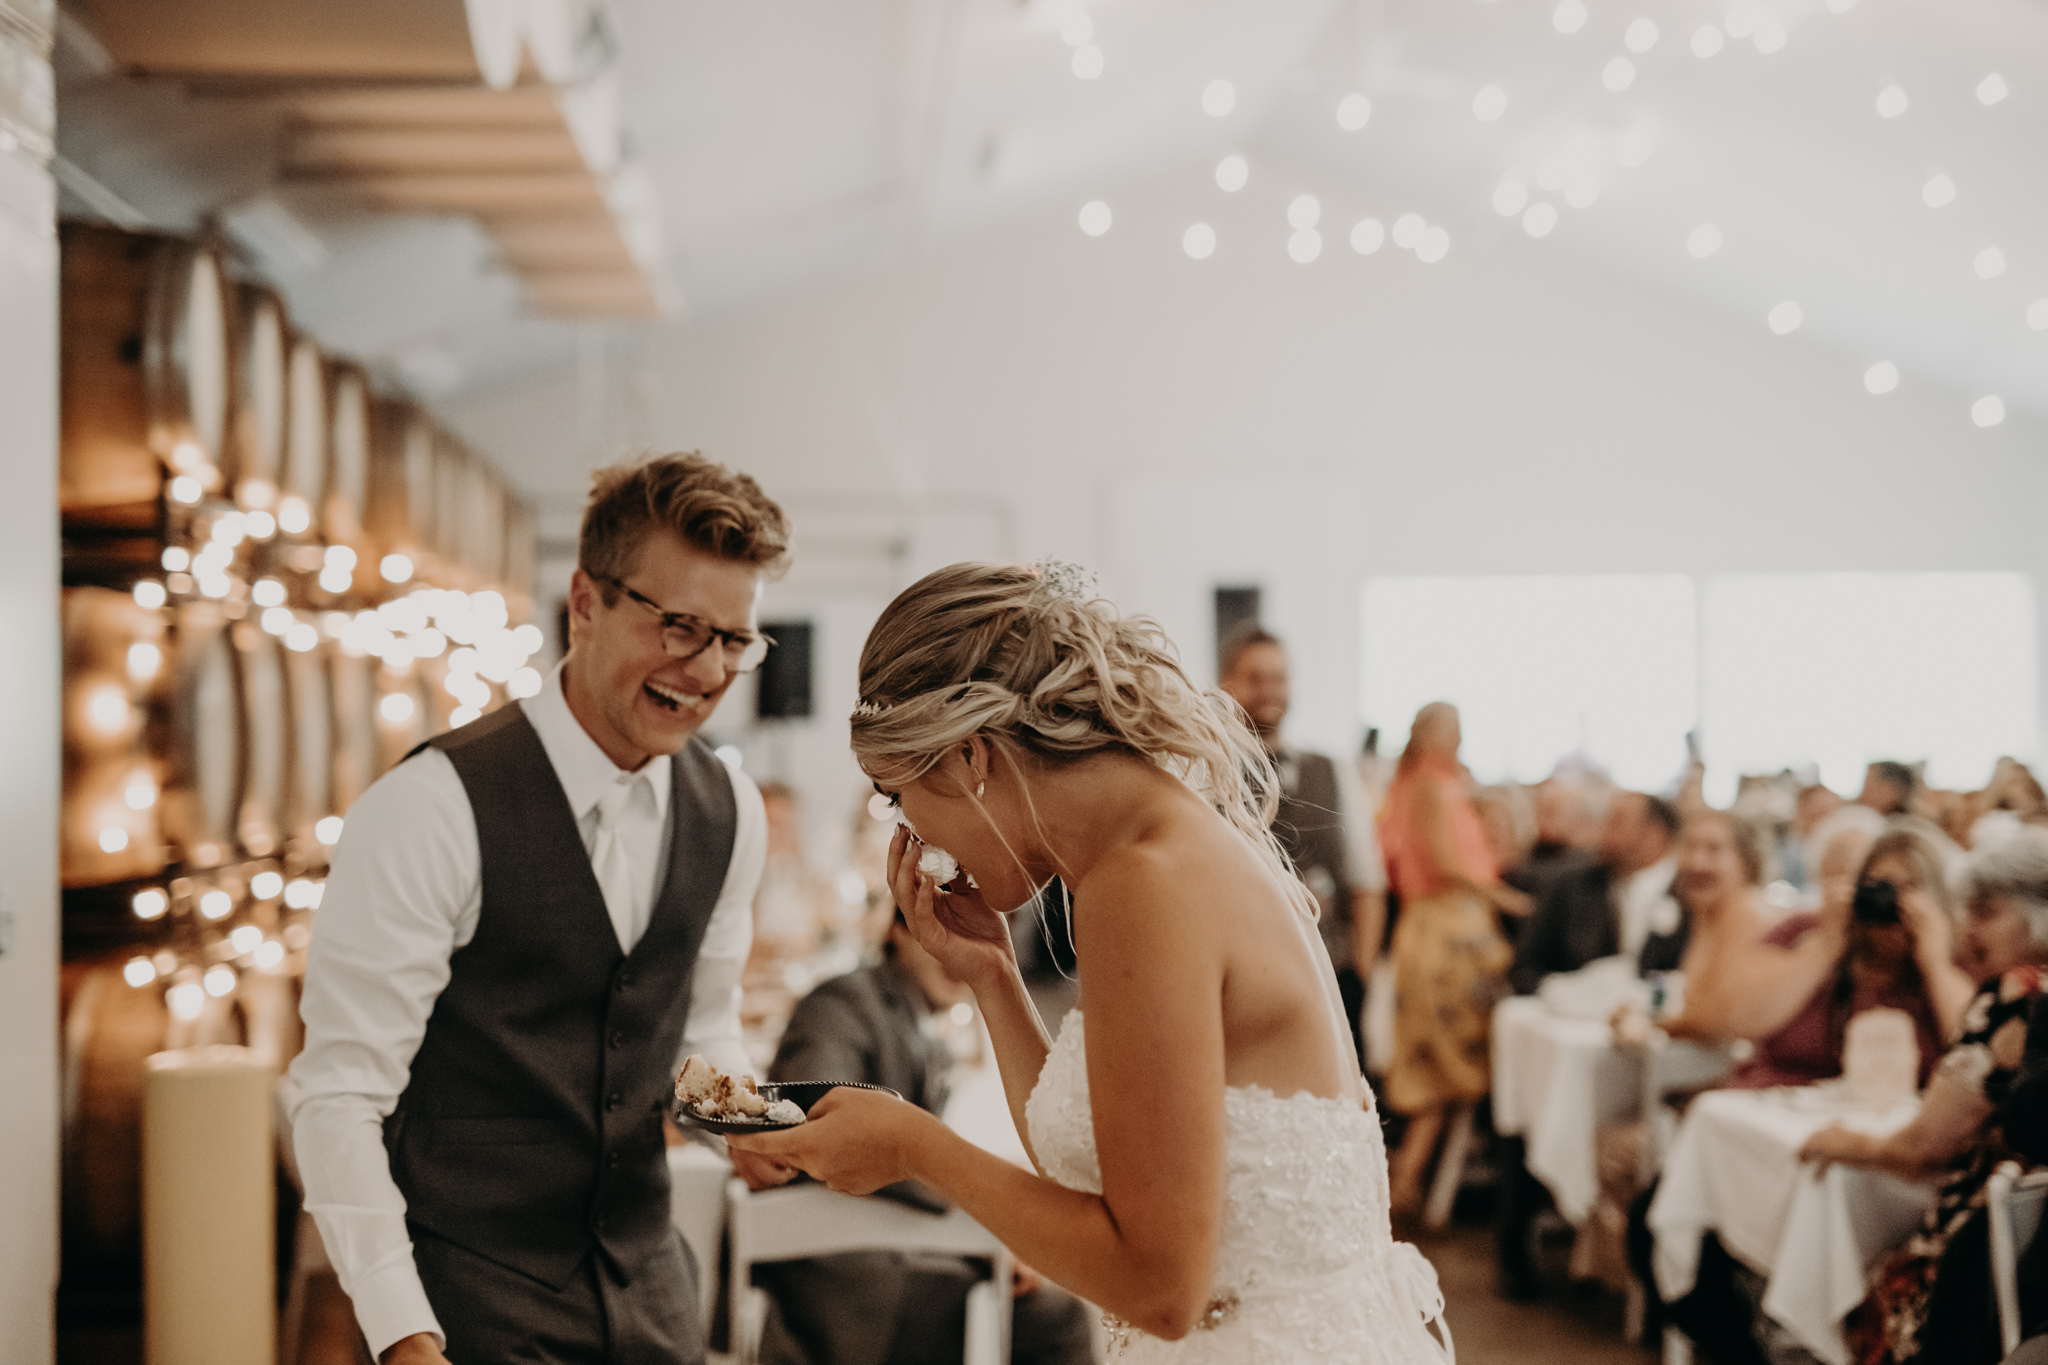 Bride and groom cake cutting at Barrel + Beam